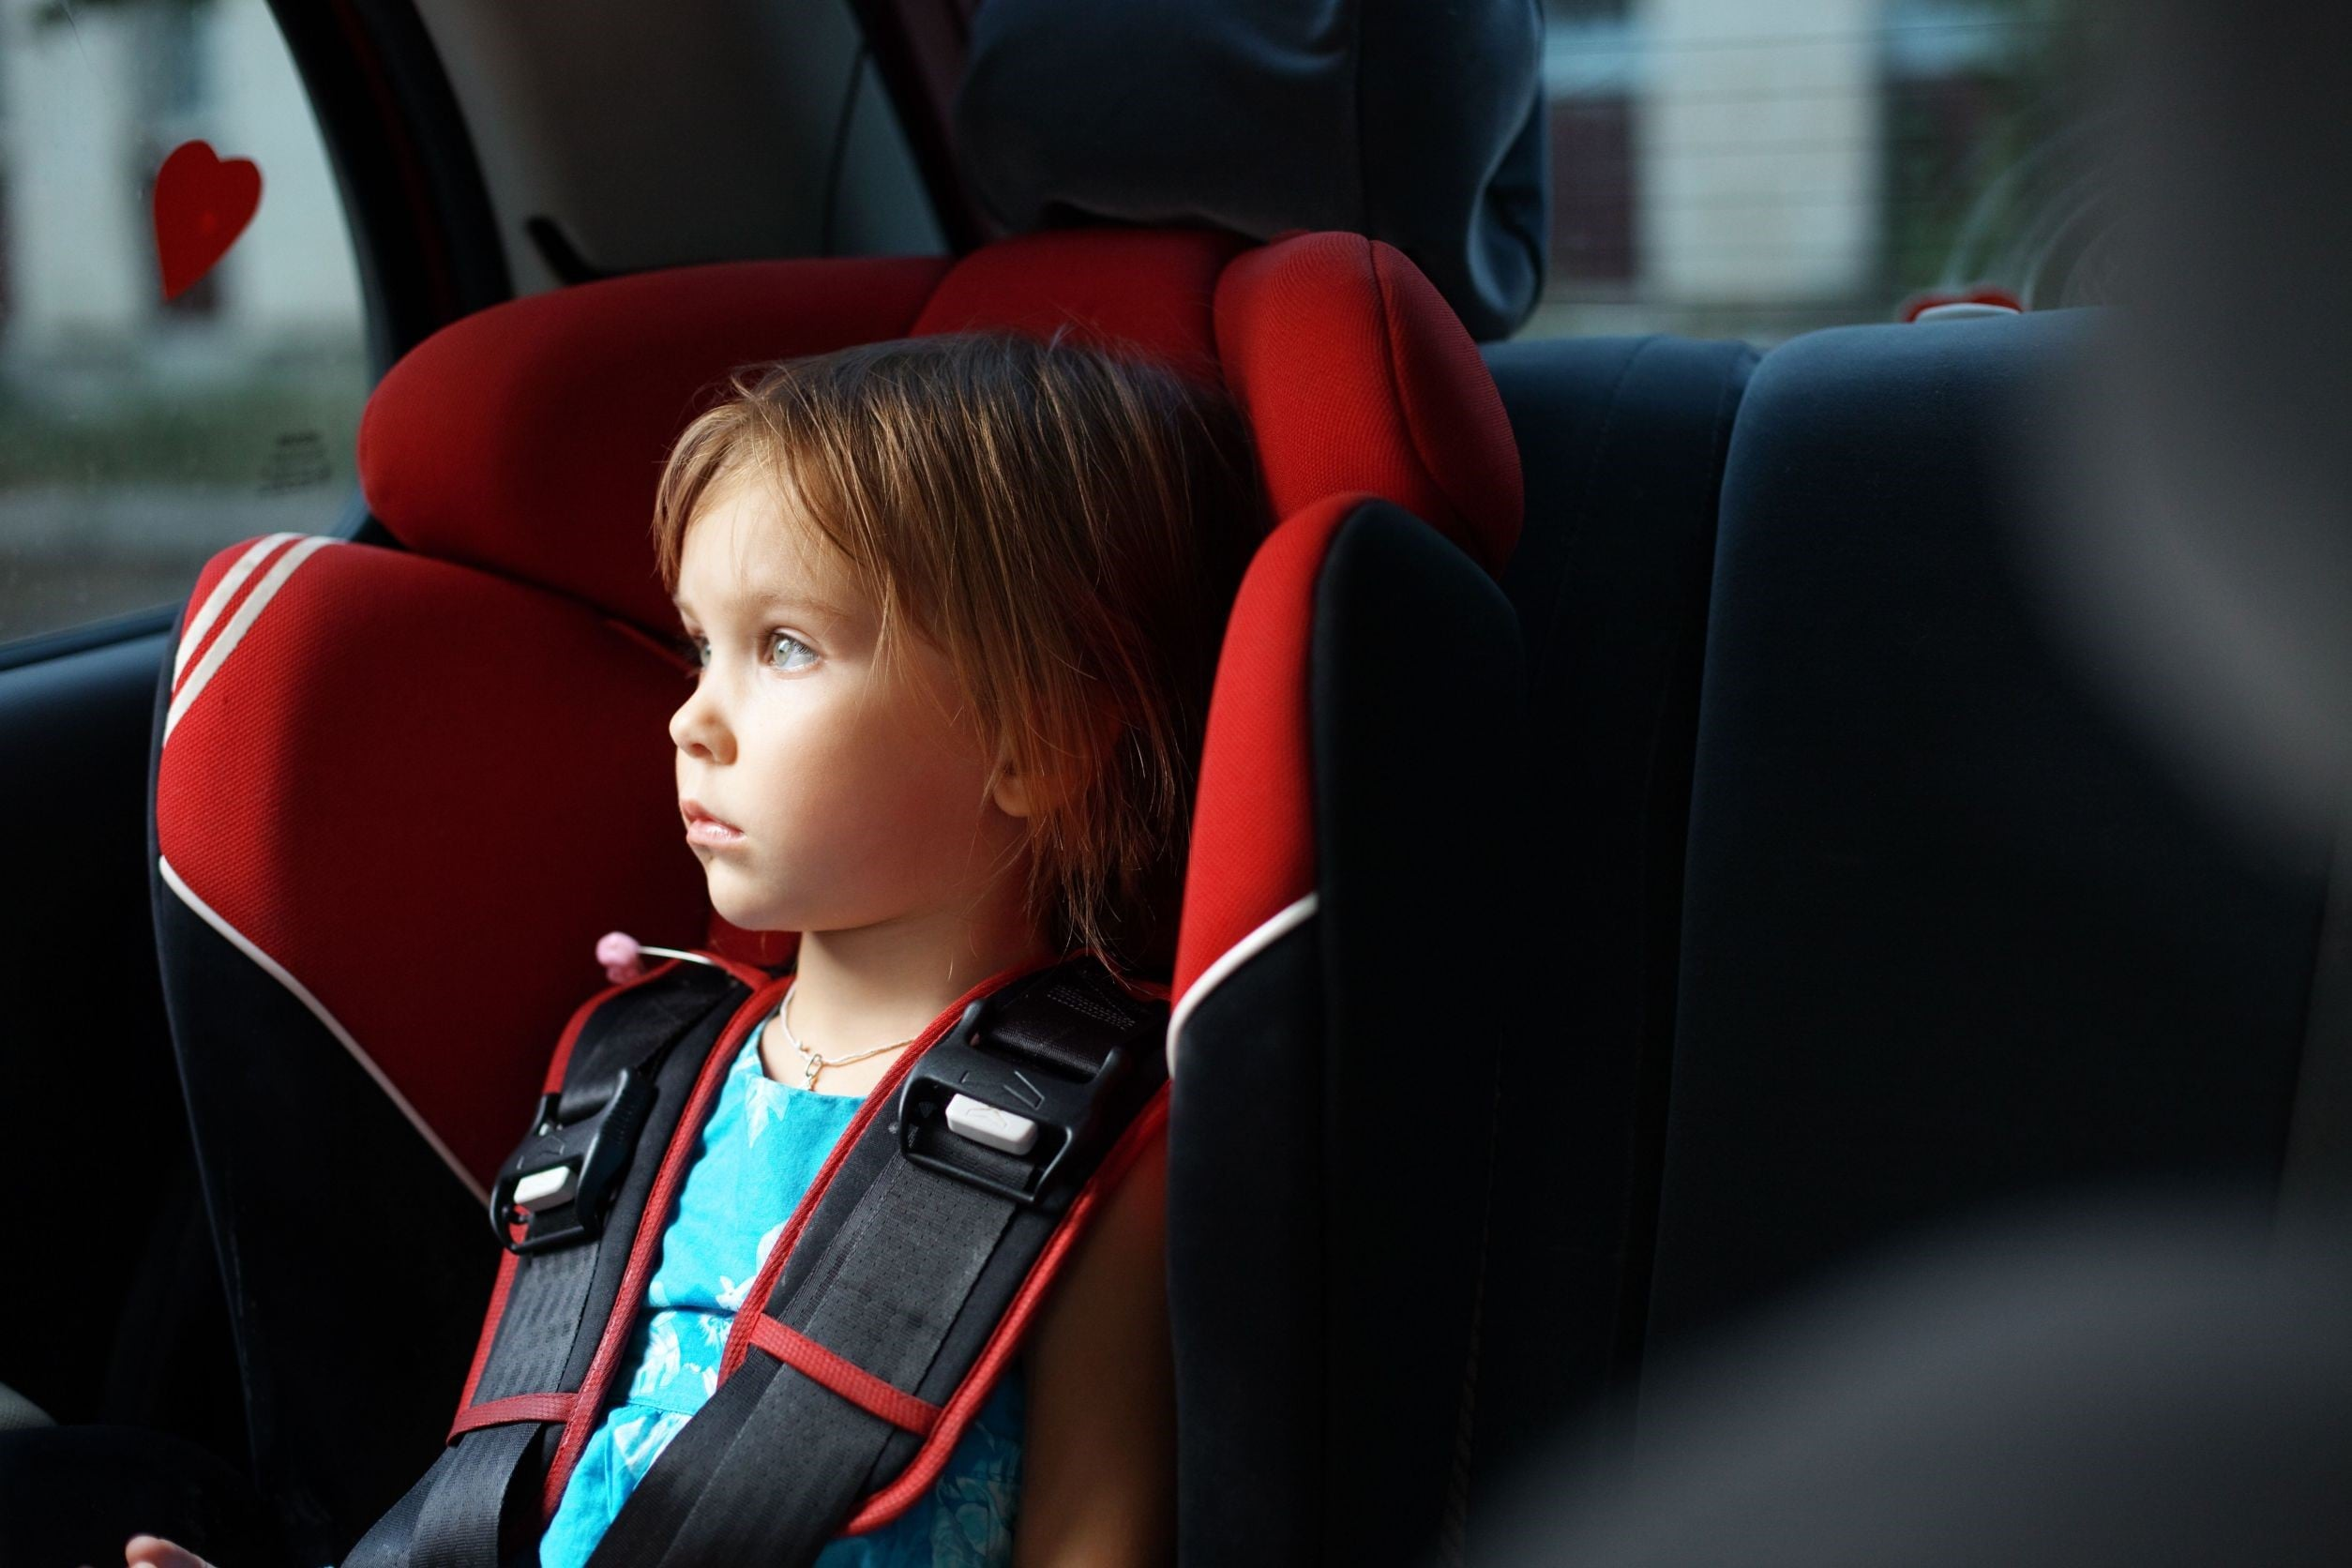 Why Child Auto Safety Goes Beyond Car Seats